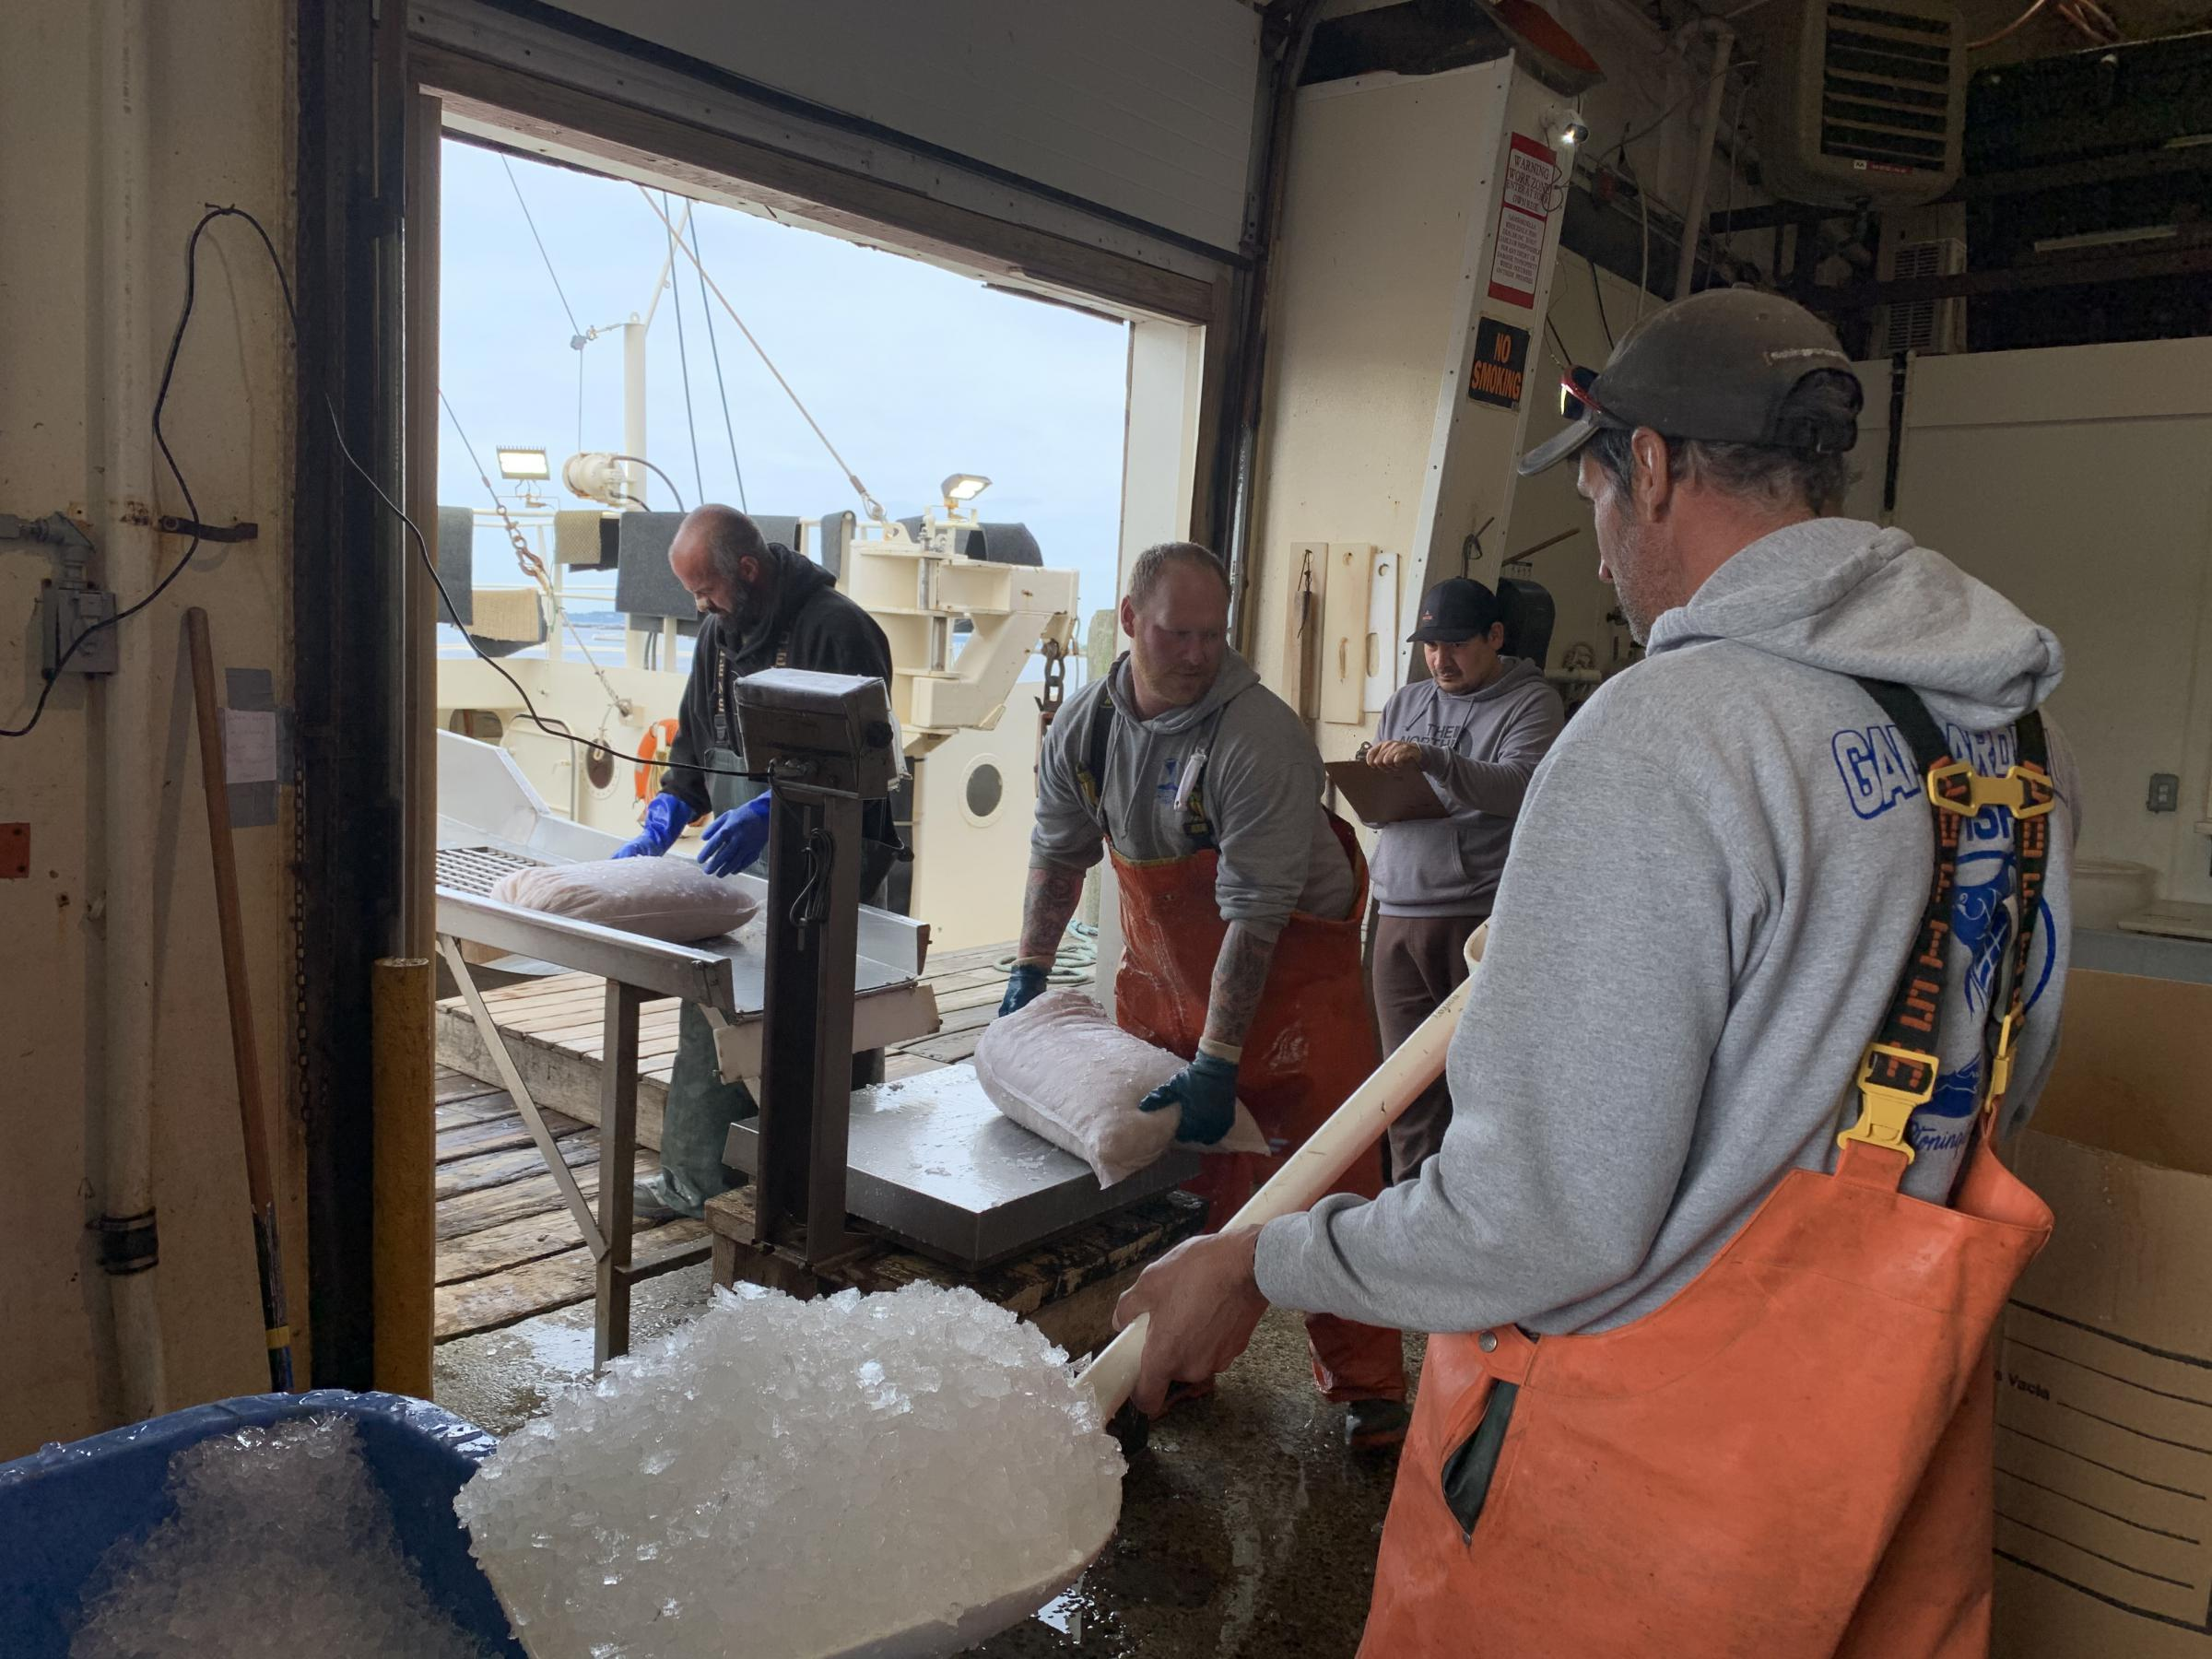 Fishing industry feels stranded as offshore wind gathers momentum